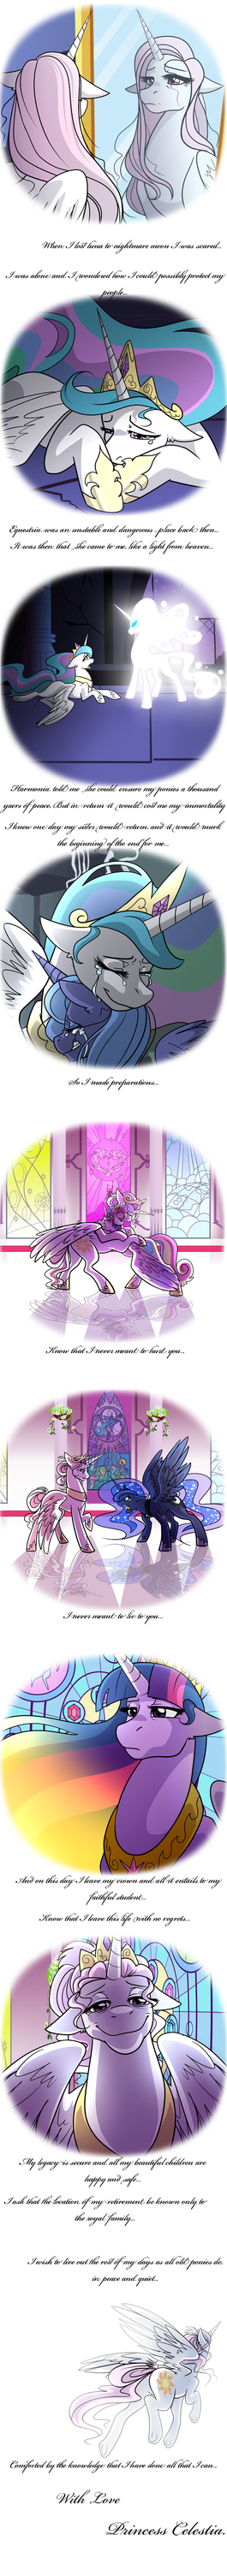 Celestia's farewell by angelamyrose